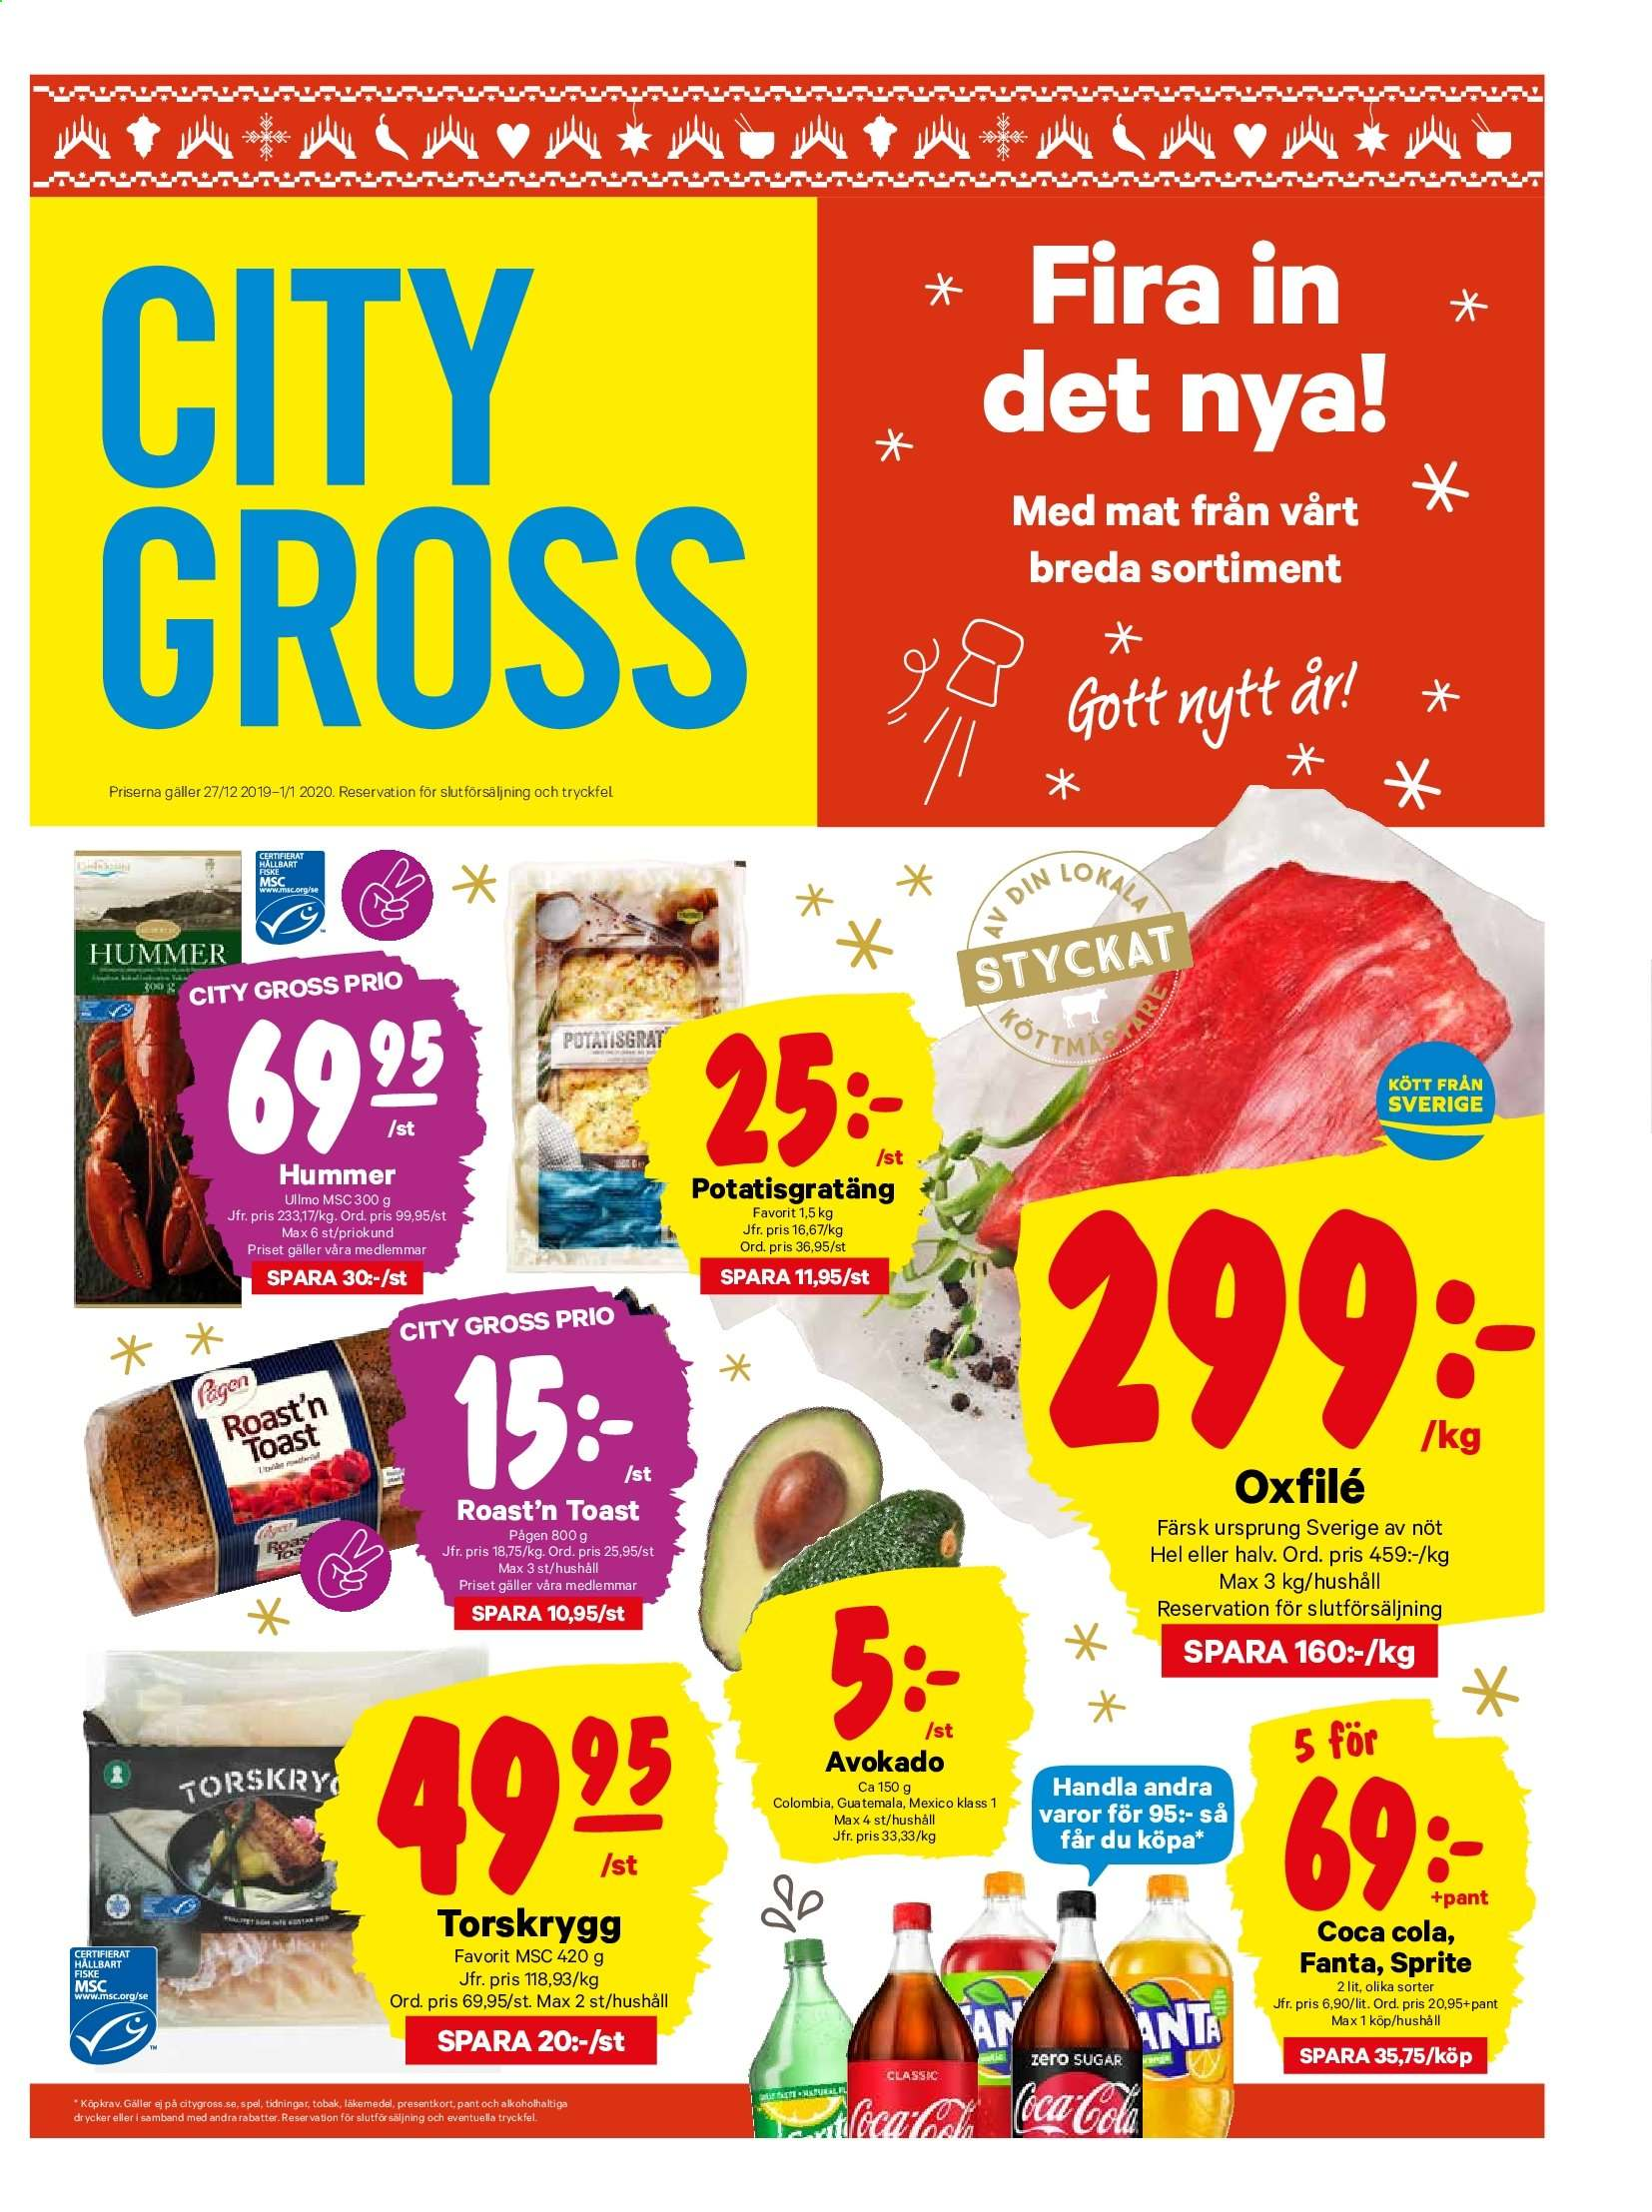 City Gross reklamblad - 27/12 2019 - 1/1 2020. Sida 1.